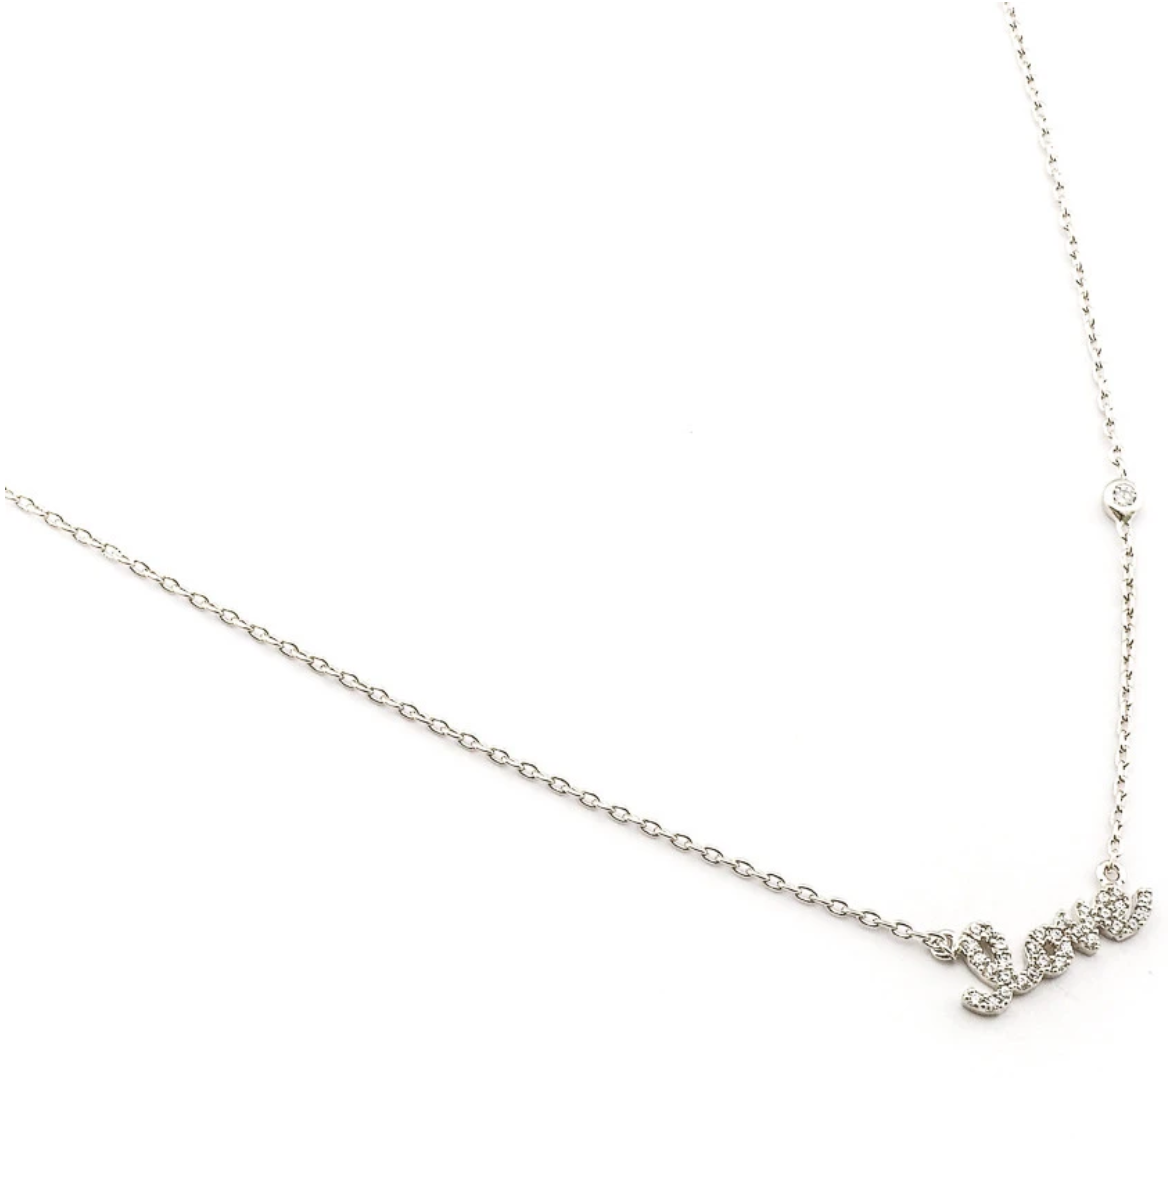 tai Simple Chain Love Necklace - Silver